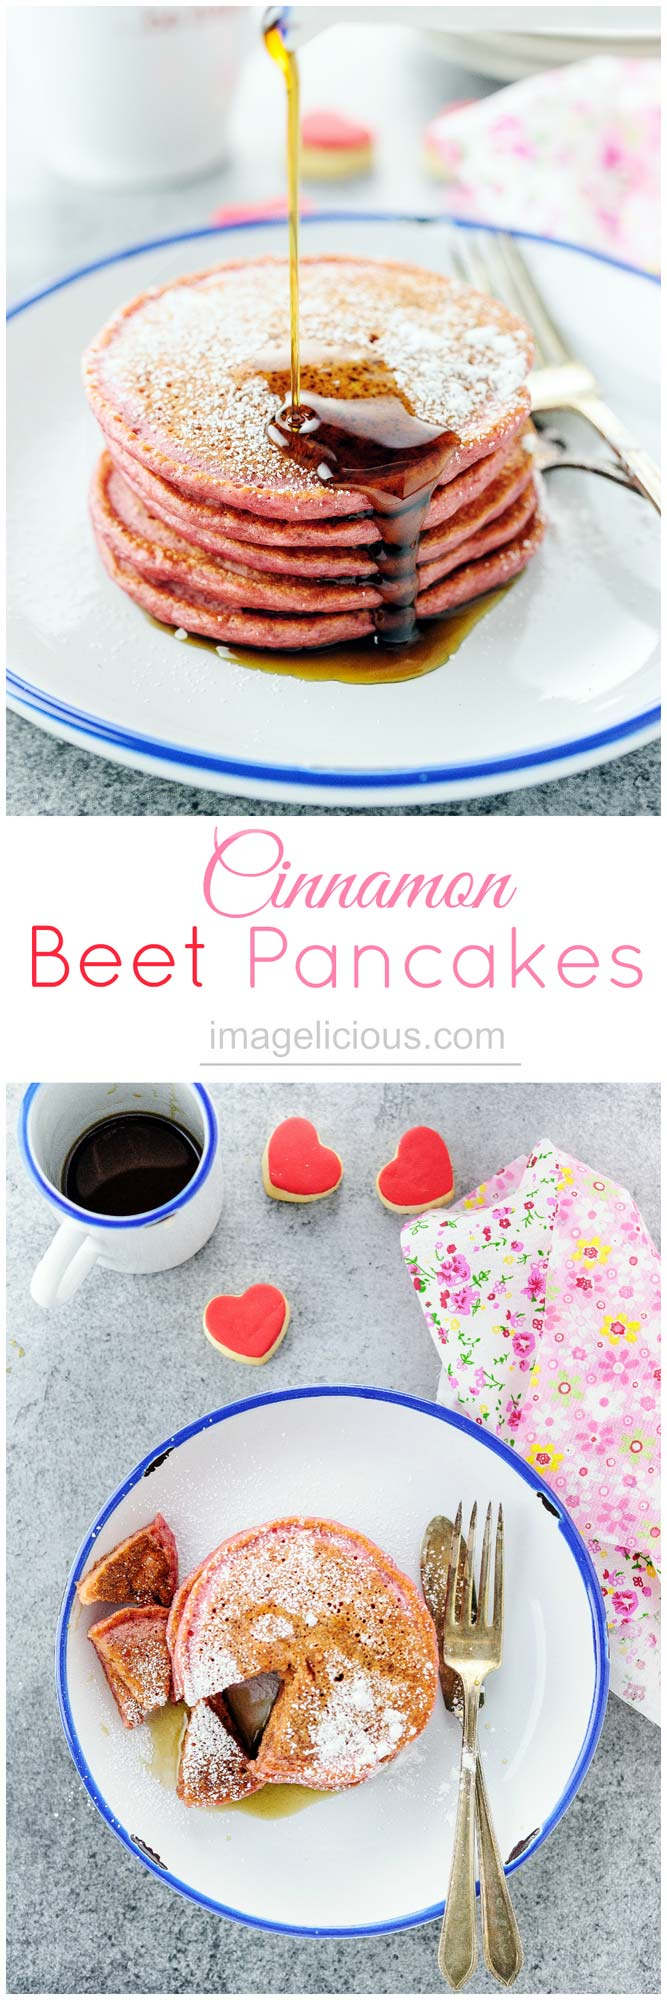 These beautiful pink Cinnamon Beet Pancakes are full of healthy beets and greek yogurt, yet you'll never know as they taste delicious. Perfect for a Valentine's Day breakfast or to make any breakfast special | Imagelicious